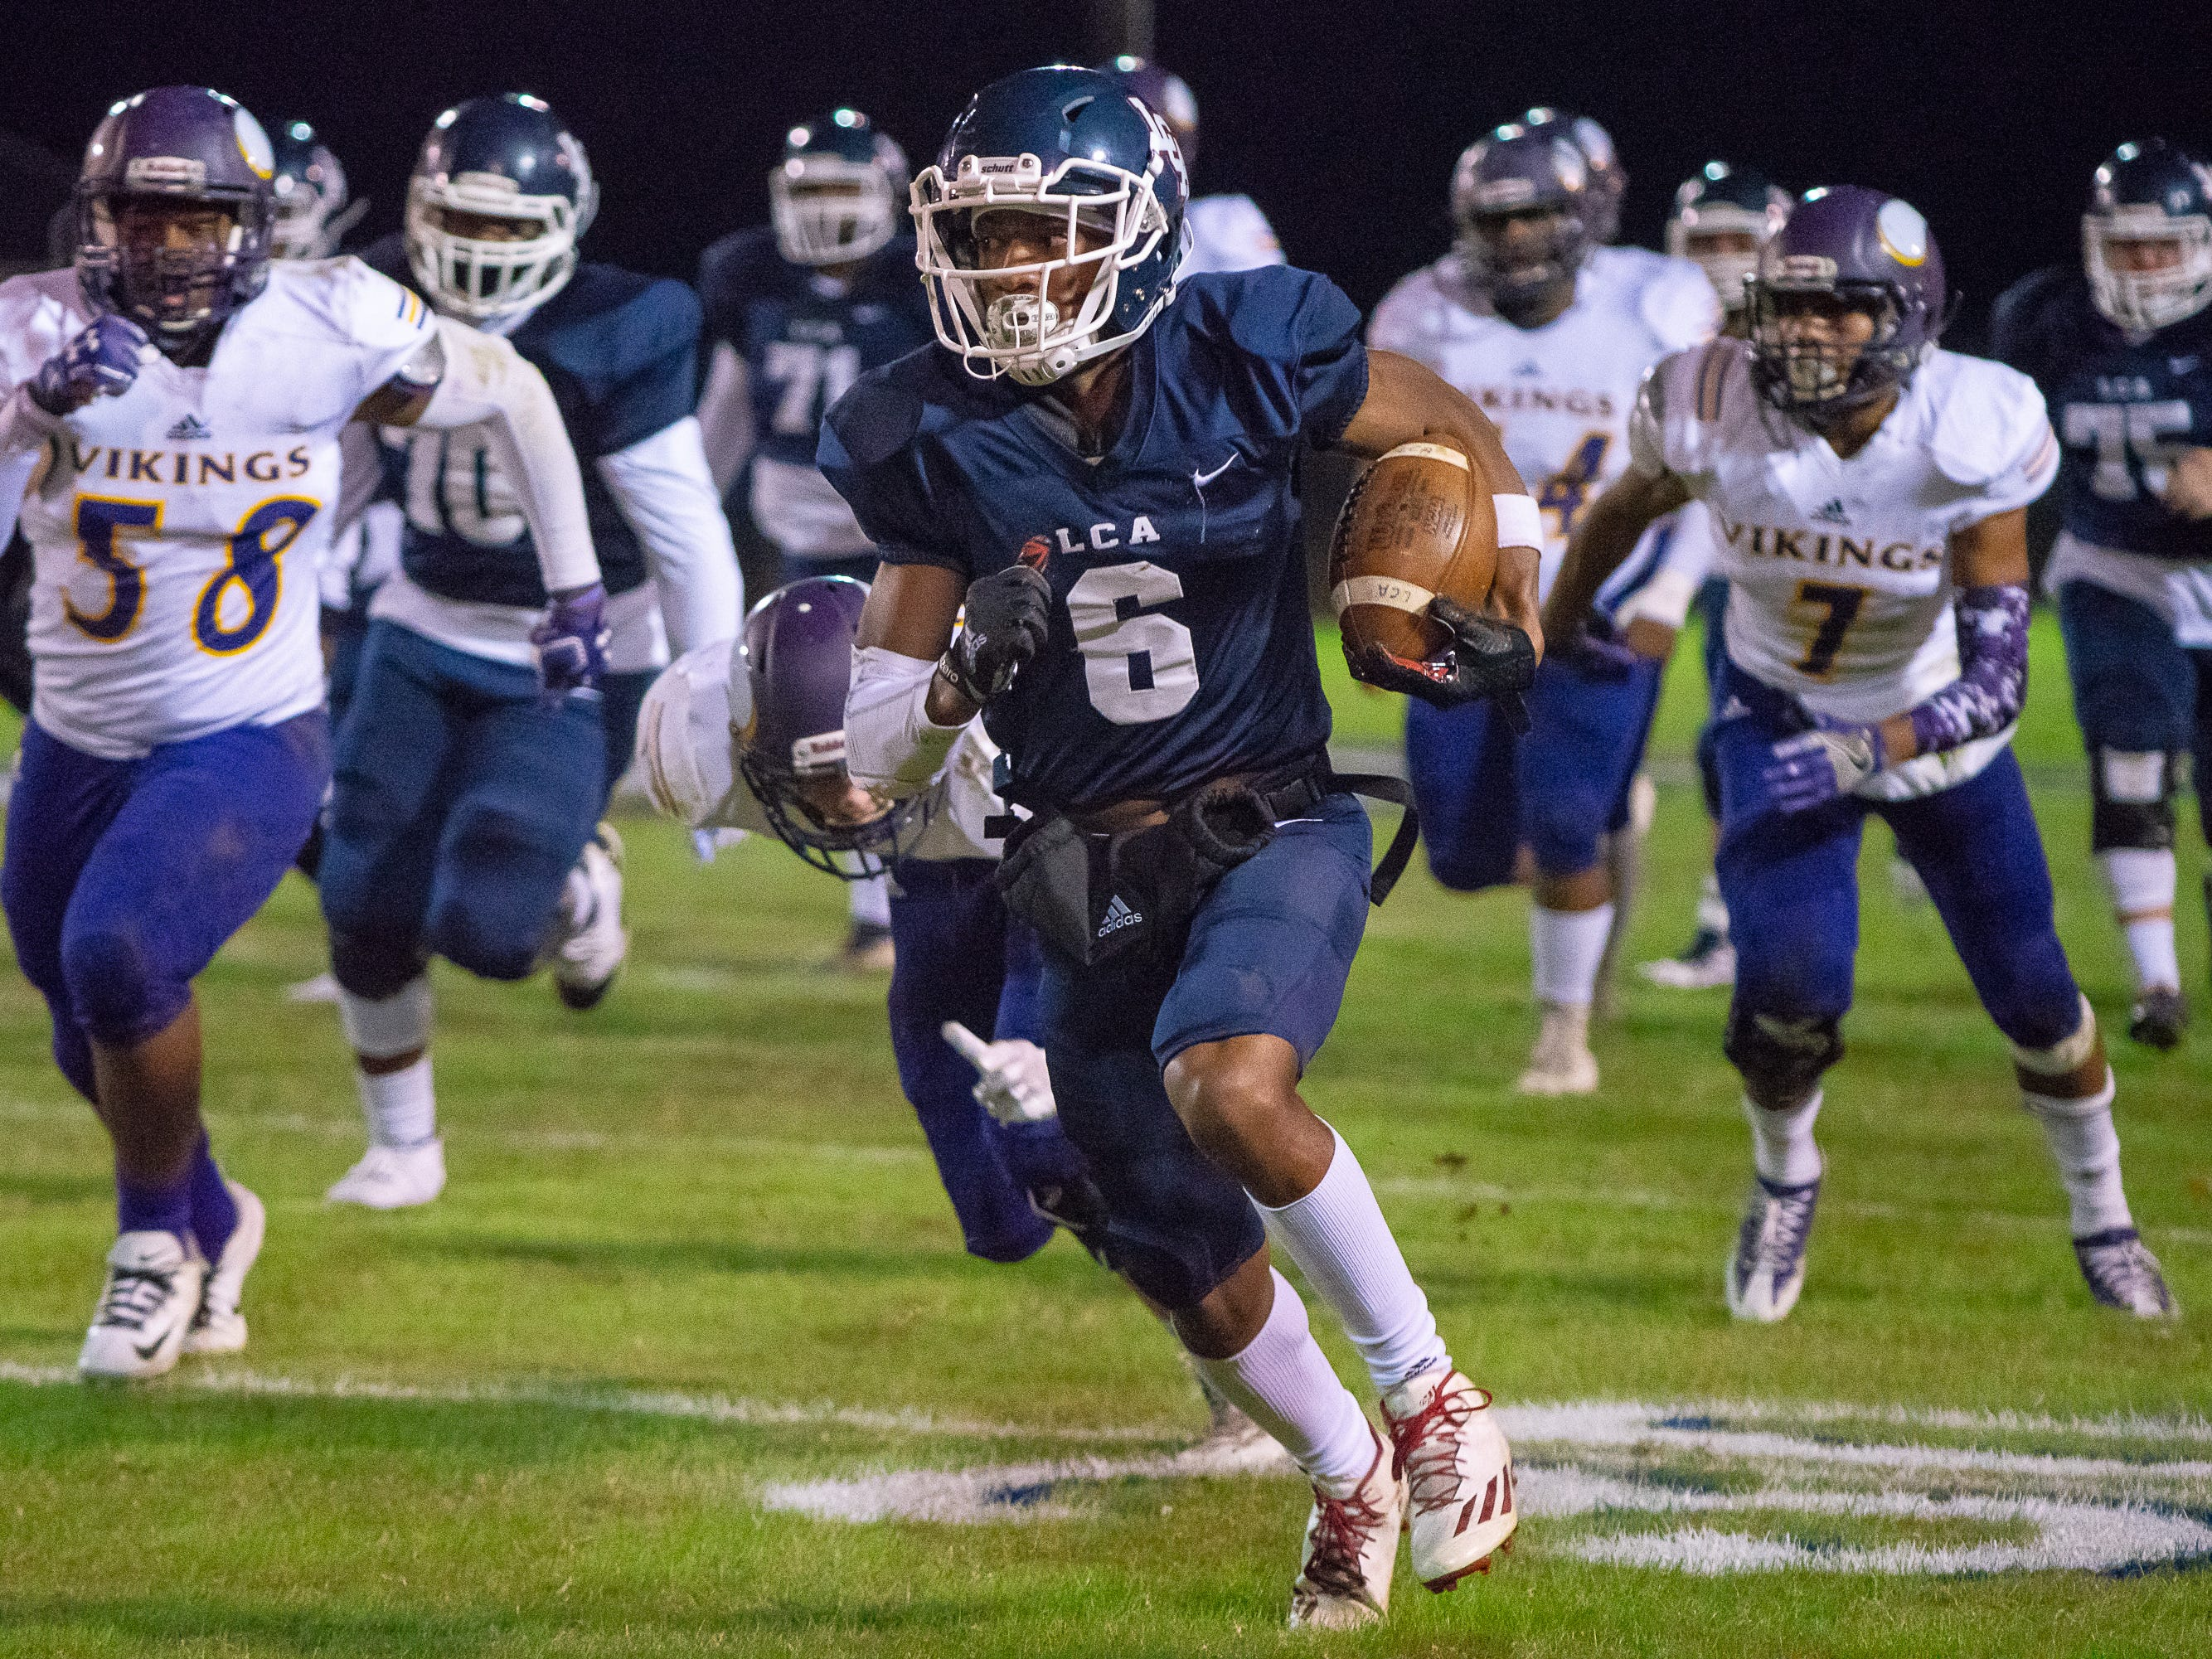 LCA loved the challenge, smack talk in quarterfinal win over Opelousas Catholic